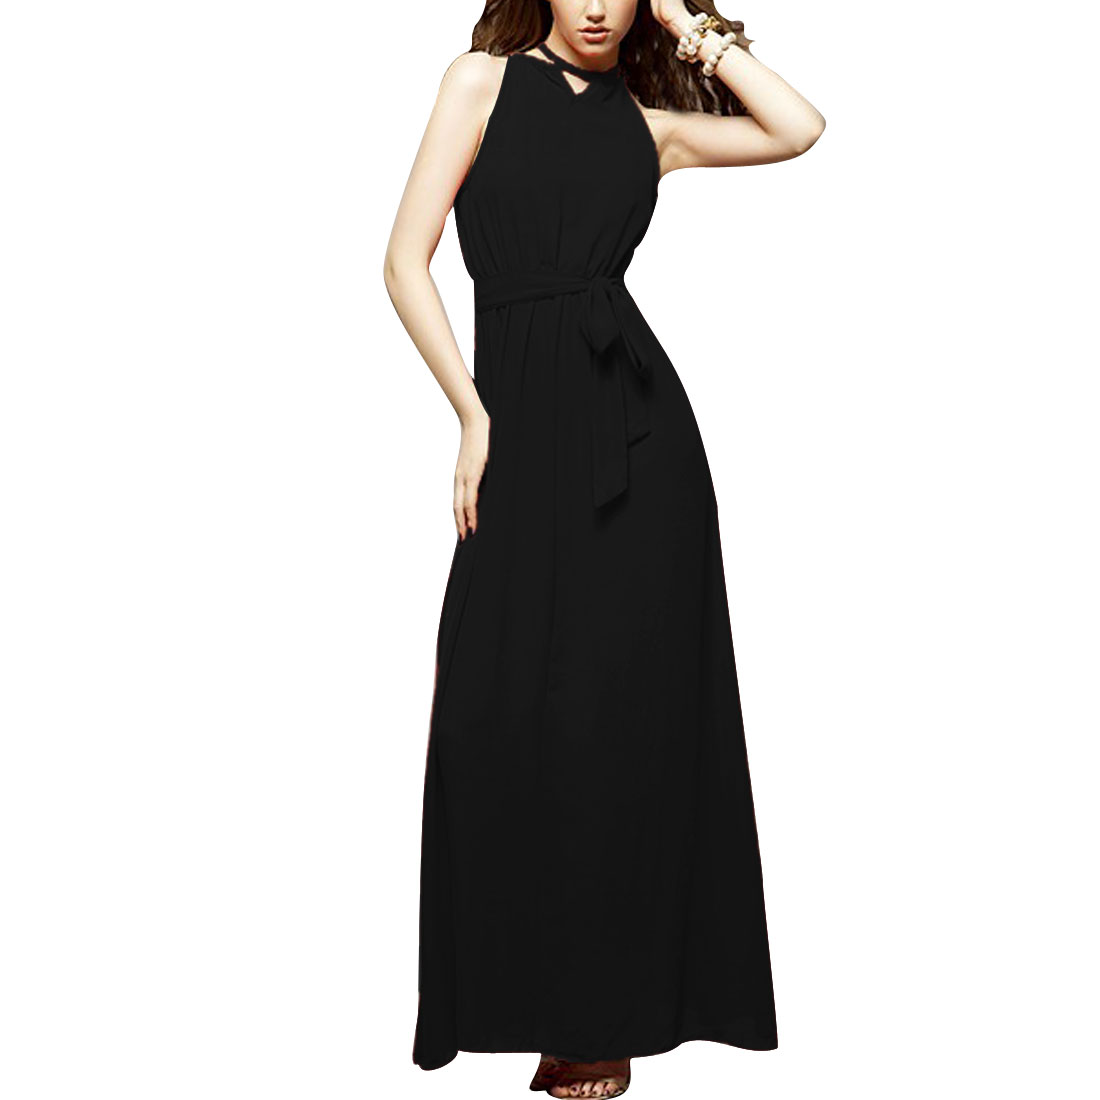 Ladies M Black Halter Neck Off Shoulder Style Stretchy Waist Casual Dress